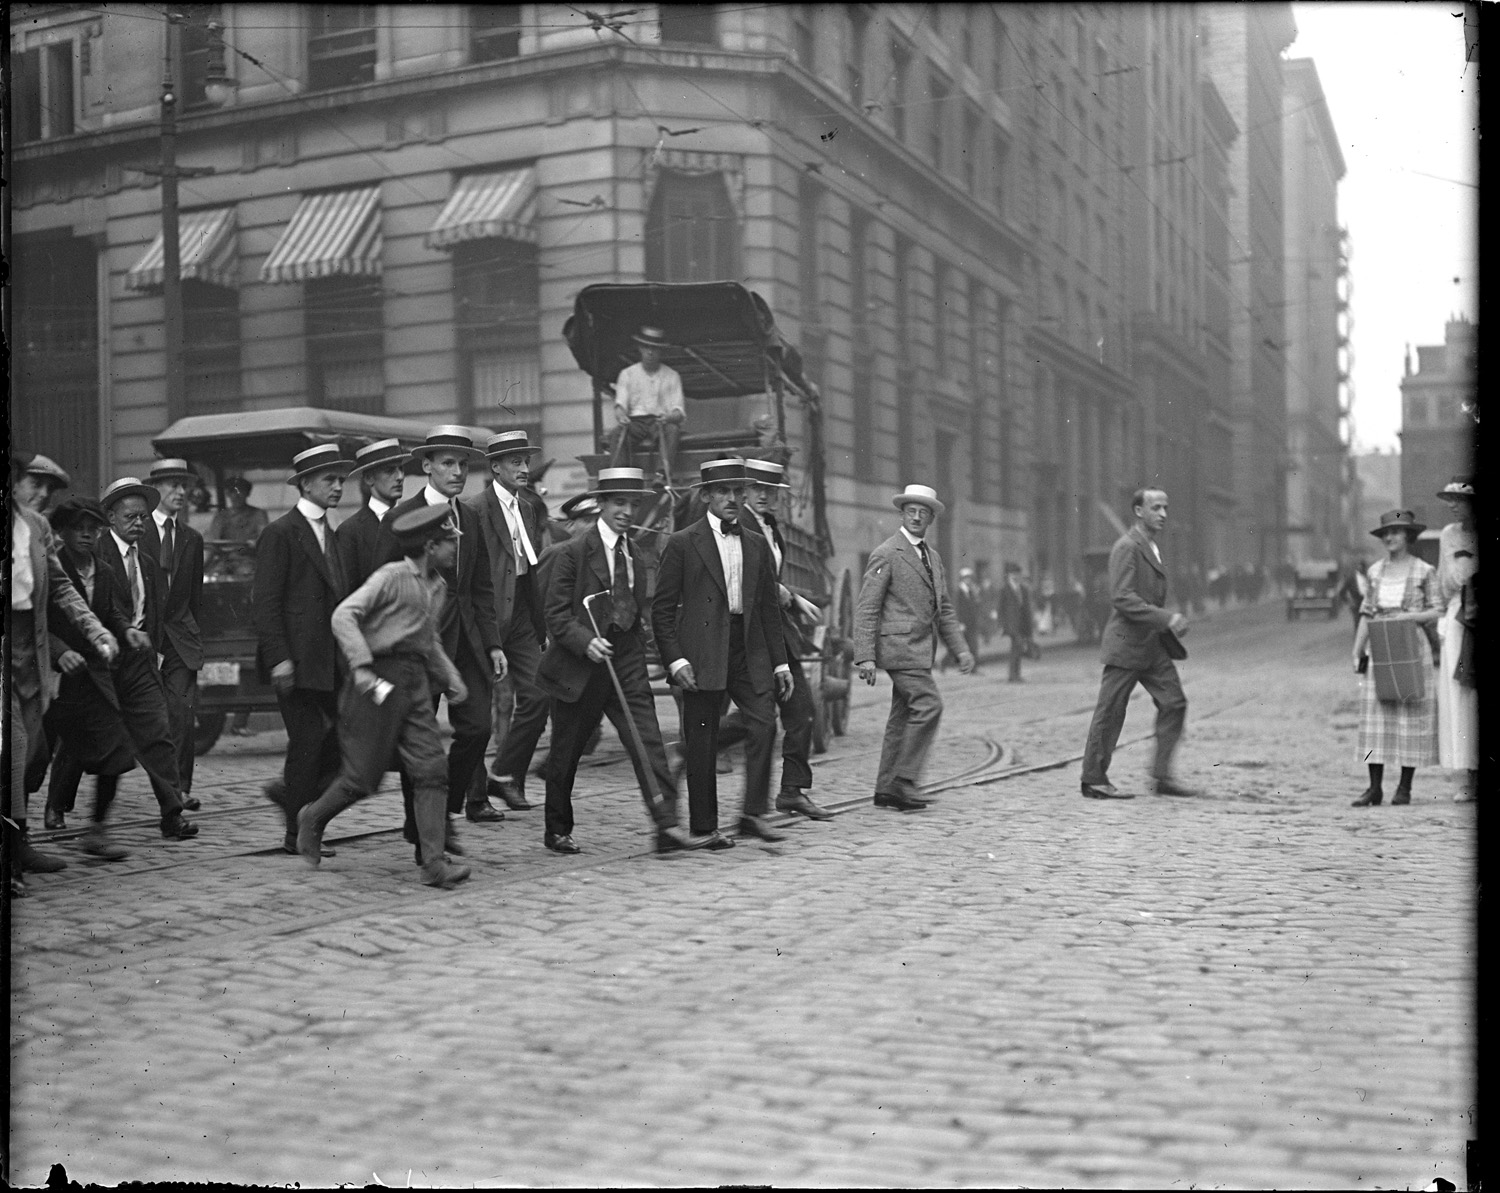 Charles Ponzi en route to a court appointment